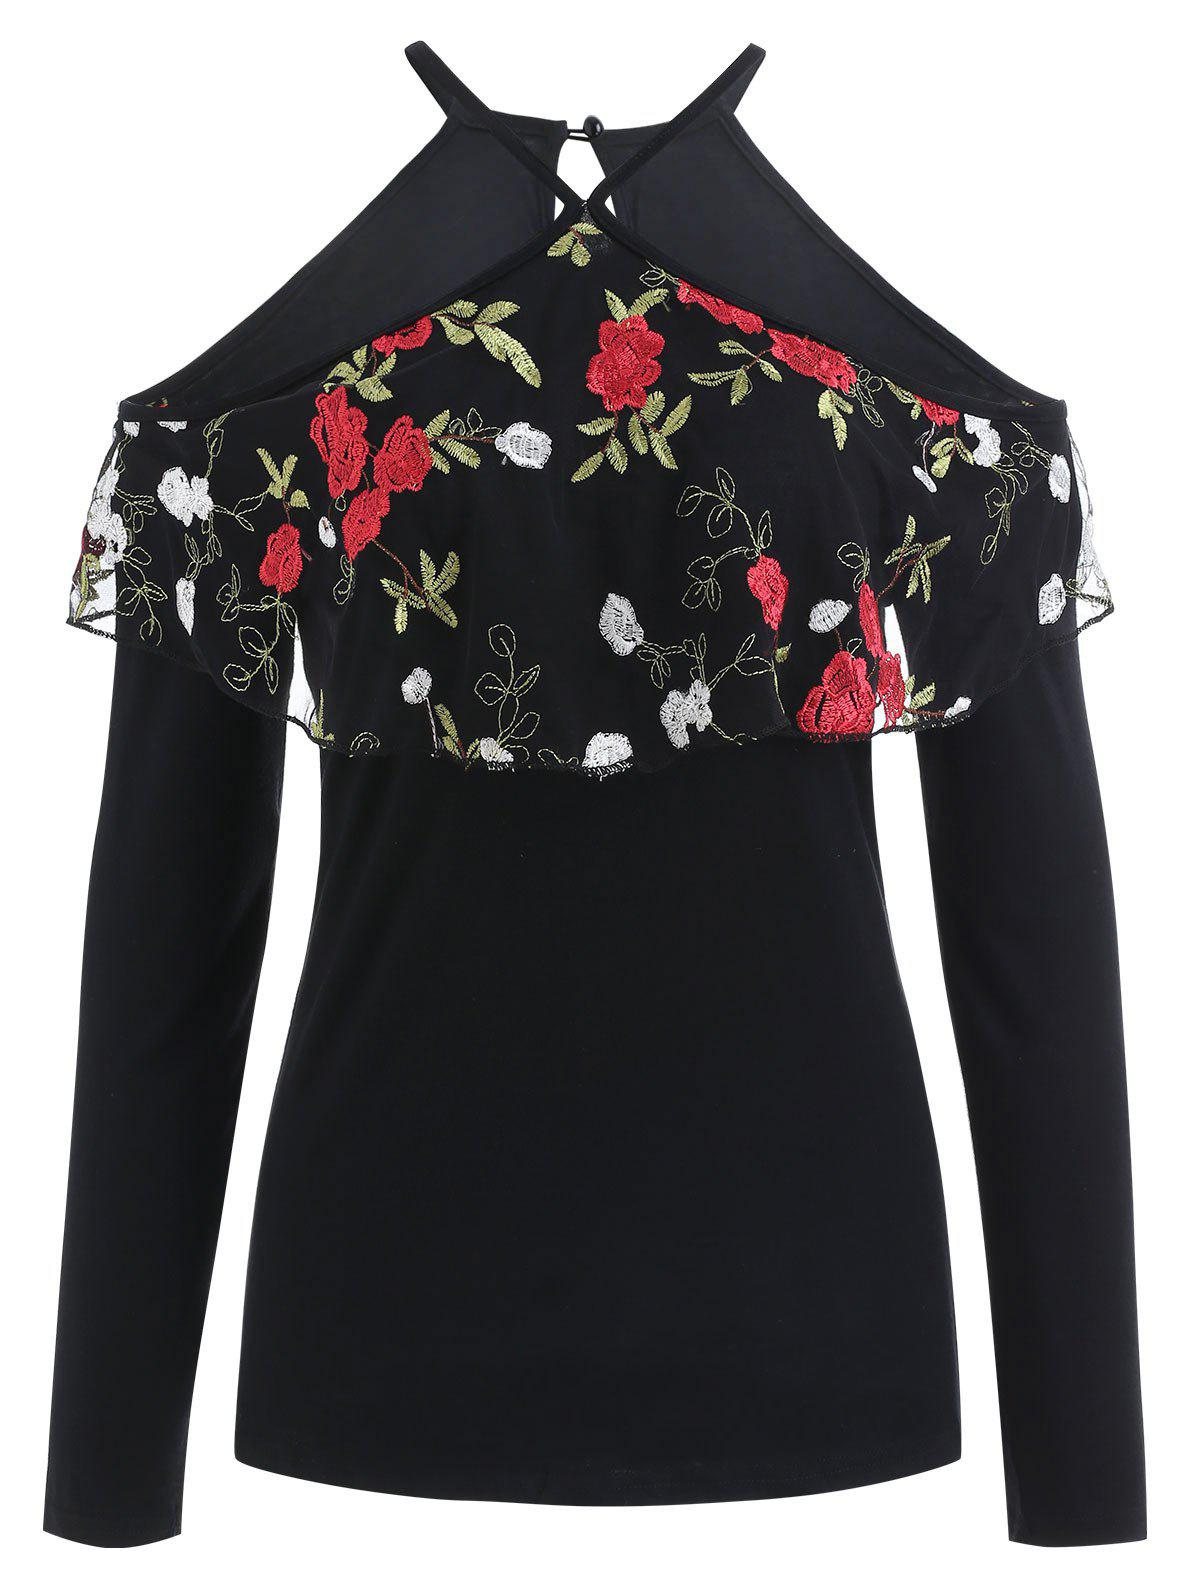 Flowered Flounce Overlay Long Sleeve Top - BLACK S